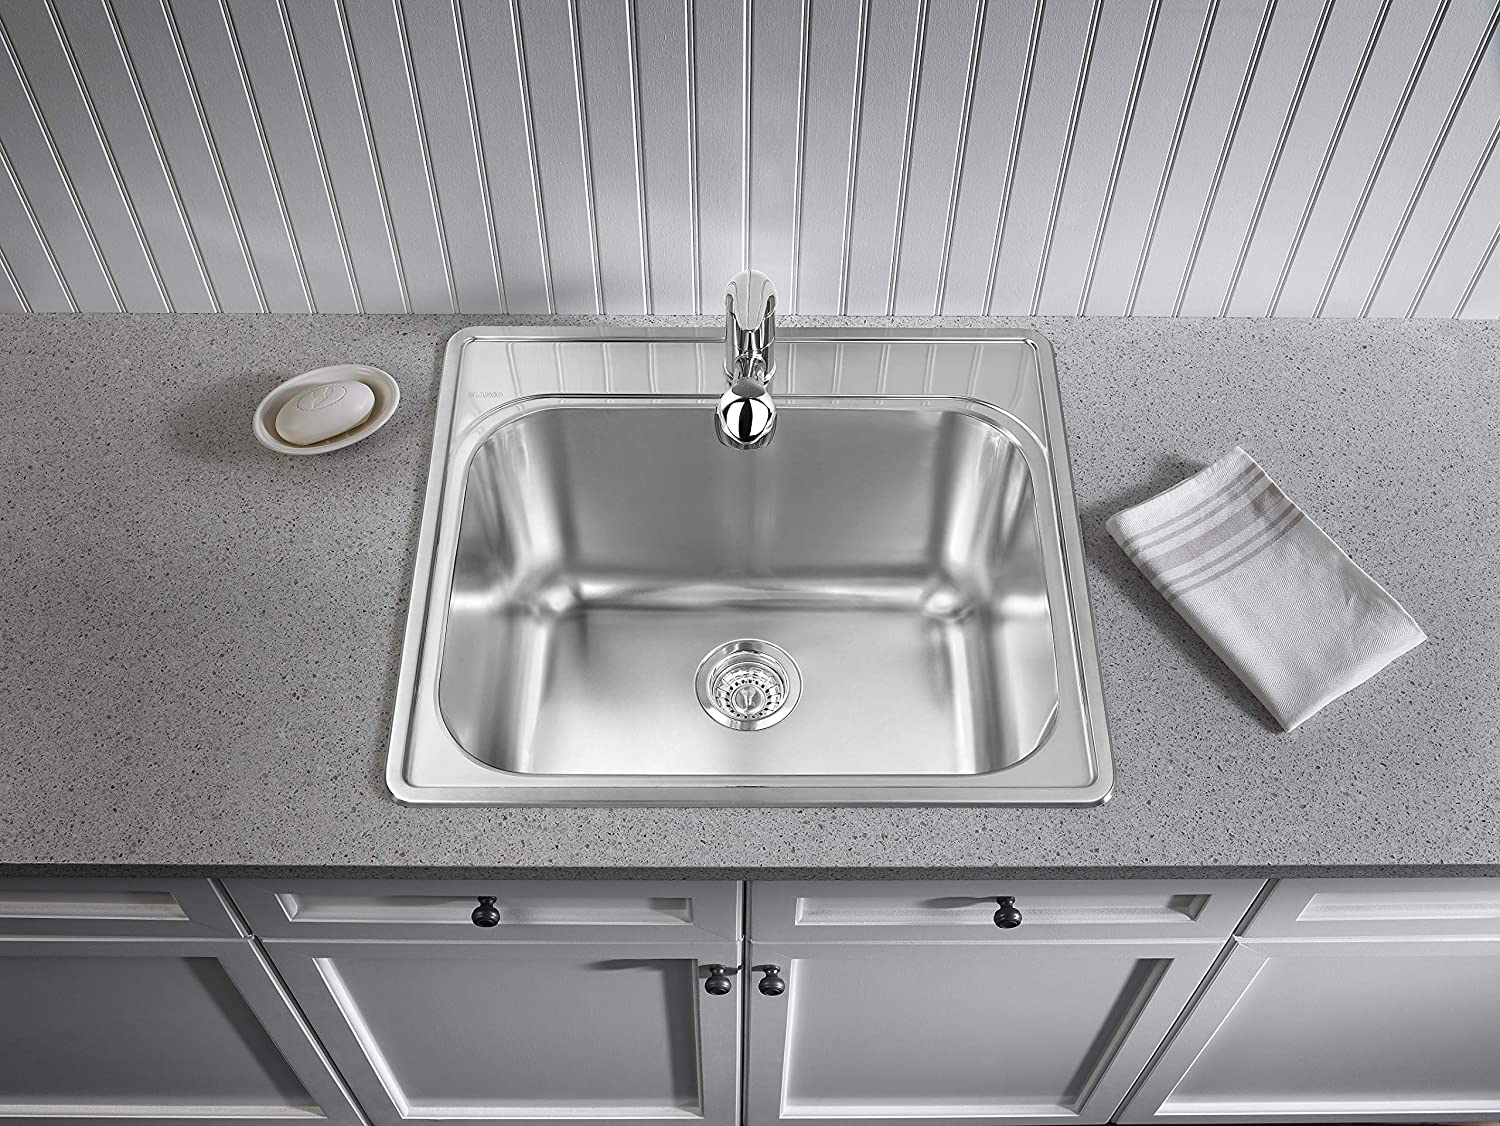 BLANCO 441078 ESSENTIAL Drop-In Laundry Sink, 25 L X 22 W X 12 D, Stainless Steel